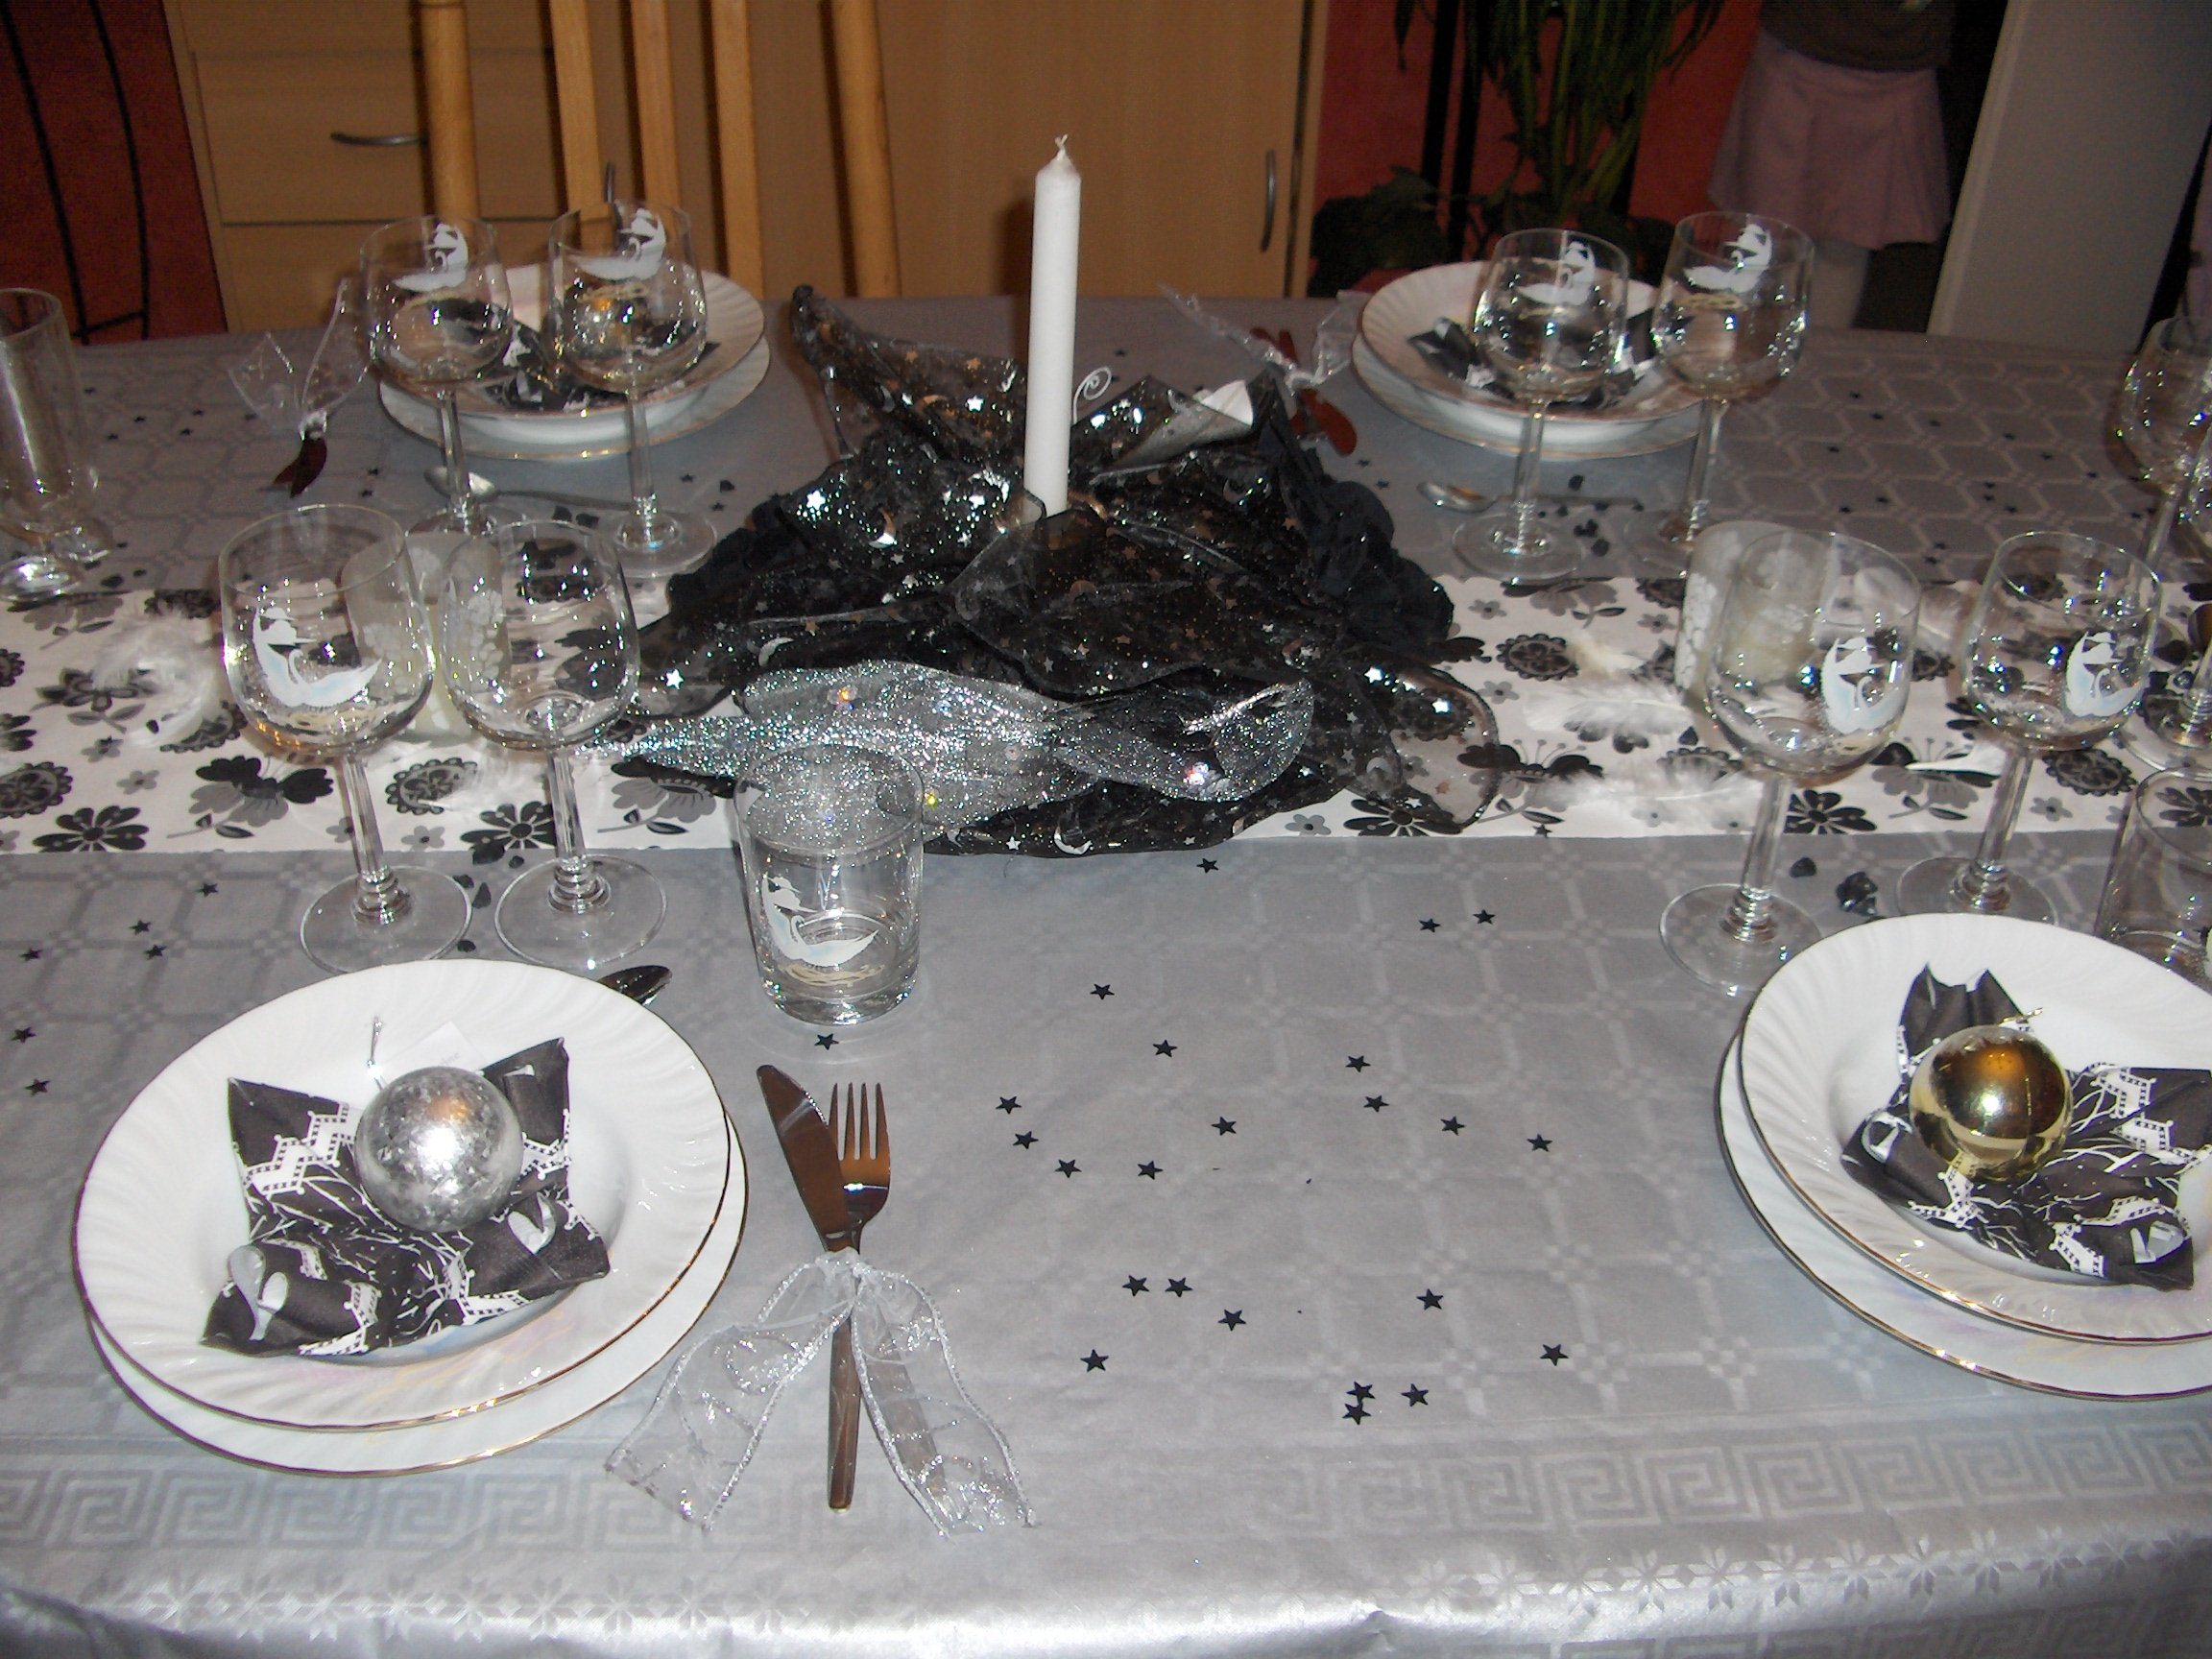 Idee dessert reveillon sylvestre 28 images 17 - Deco table reveillon nouvel an ...